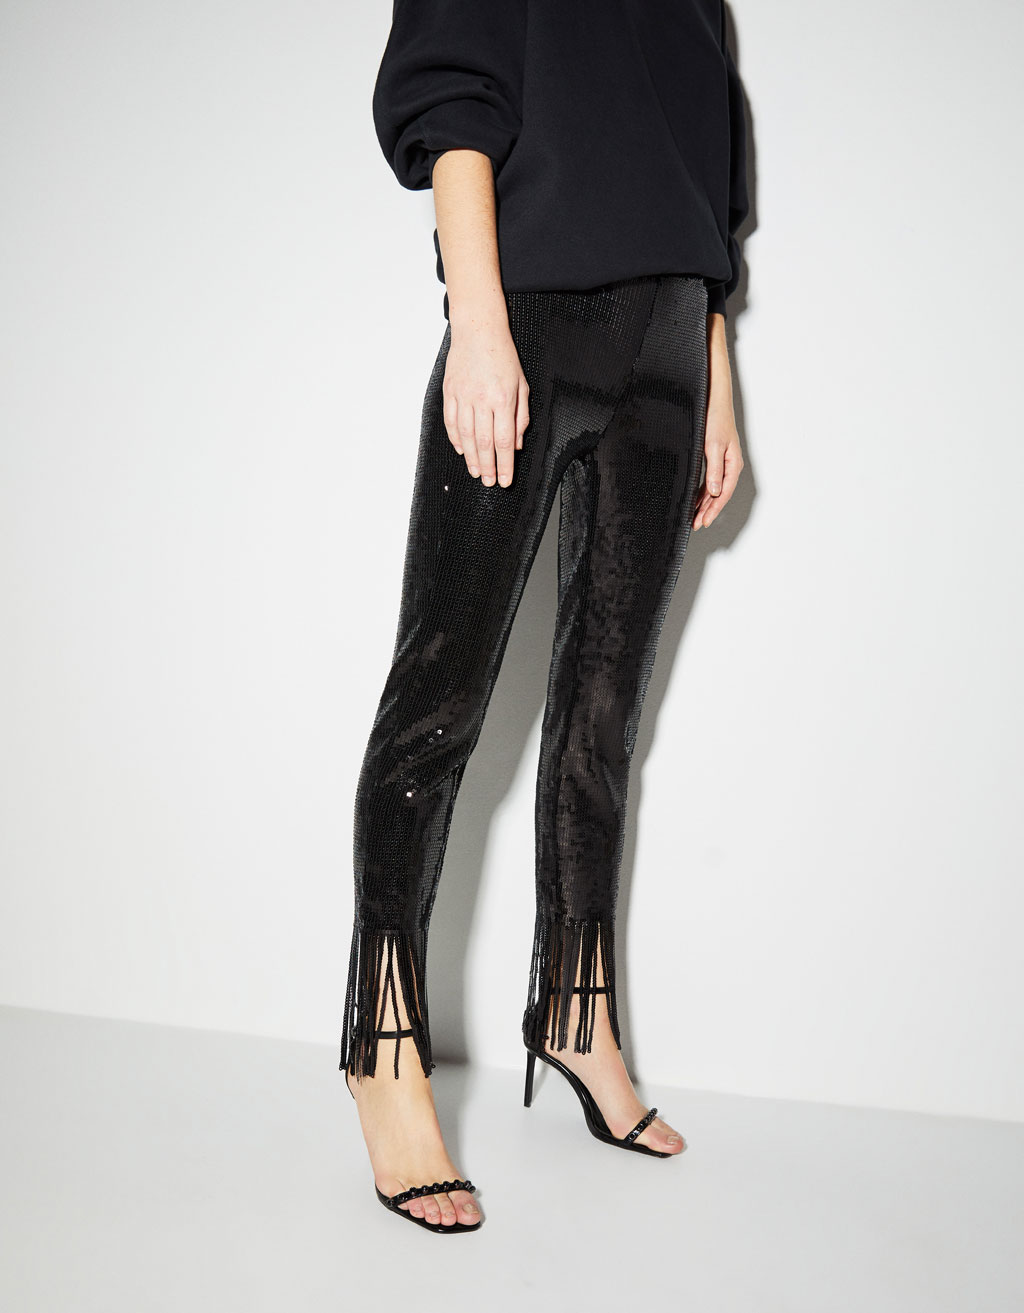 Sequined pants with fringe trims